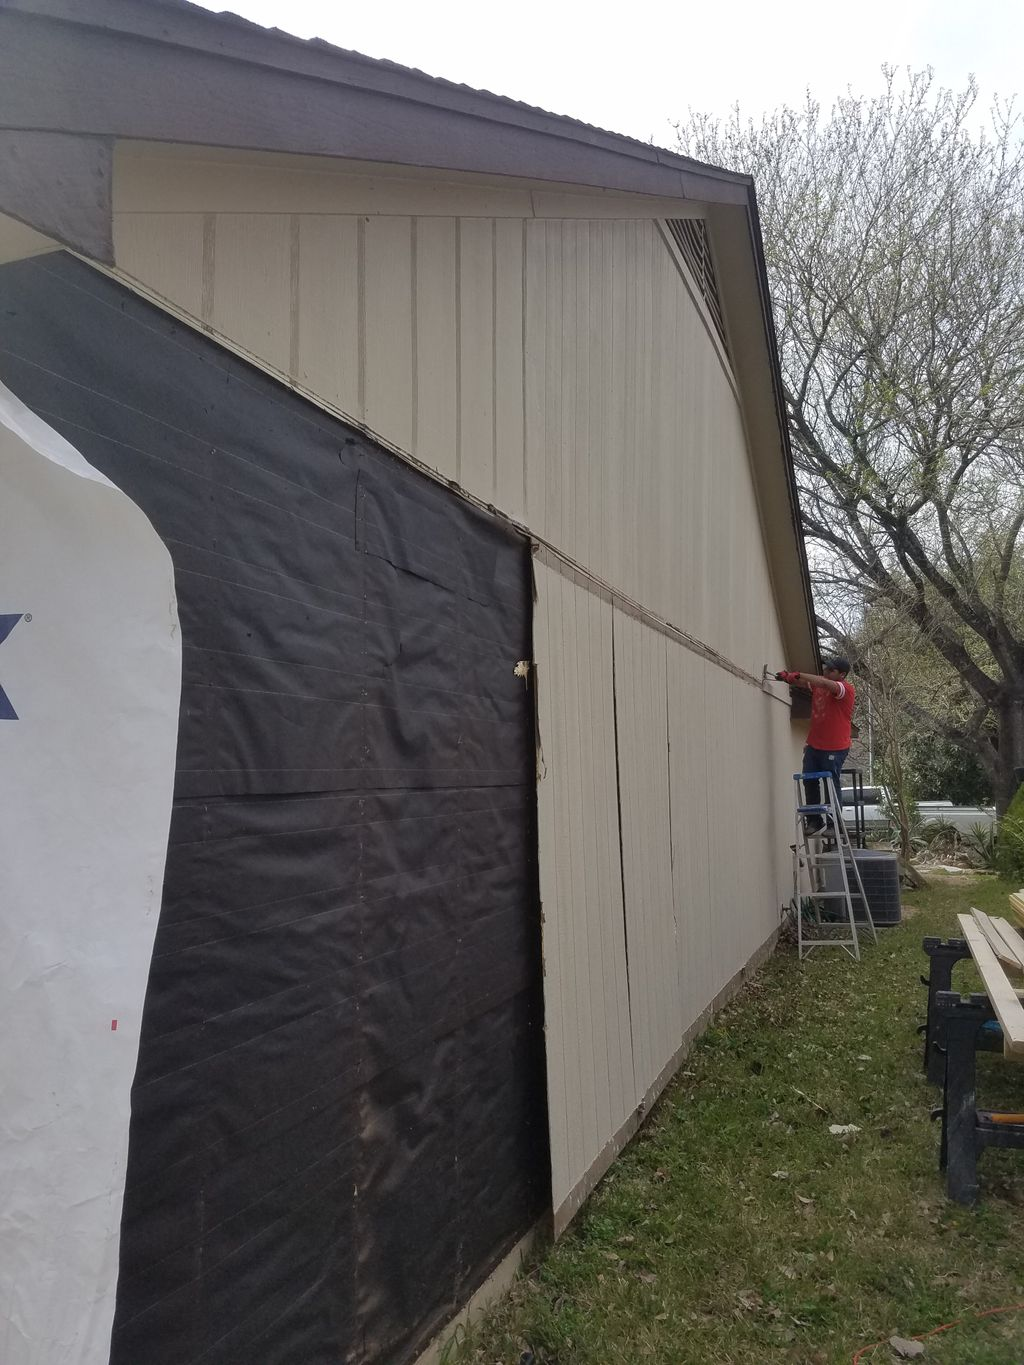 New siding and new paint